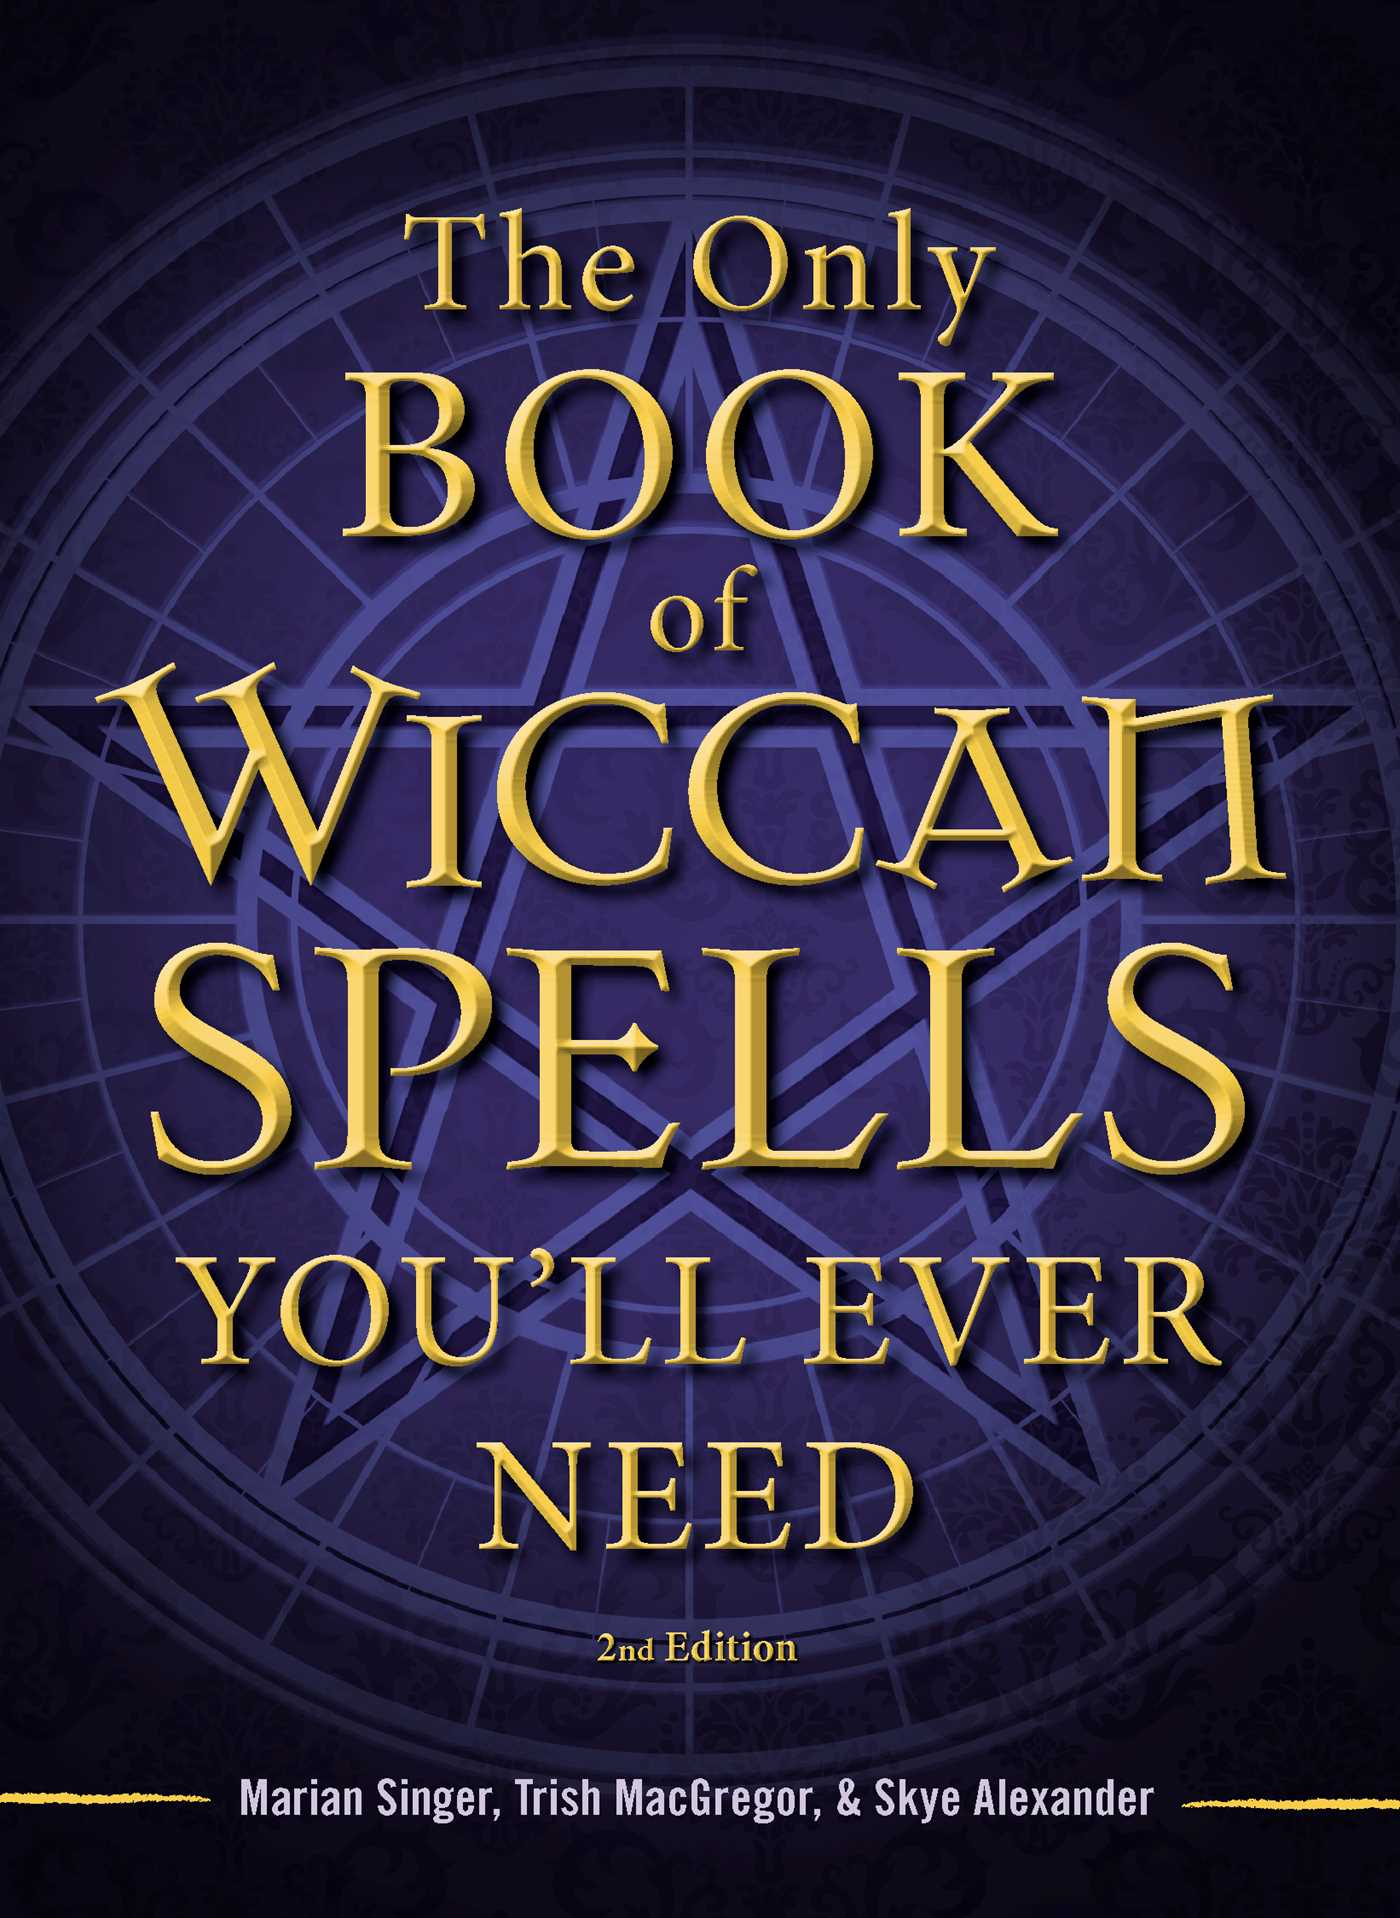 The Only Book of Wiccan Spells You ll Ever Need   Walmart com The Only Book of Wiccan Spells You ll Ever Need